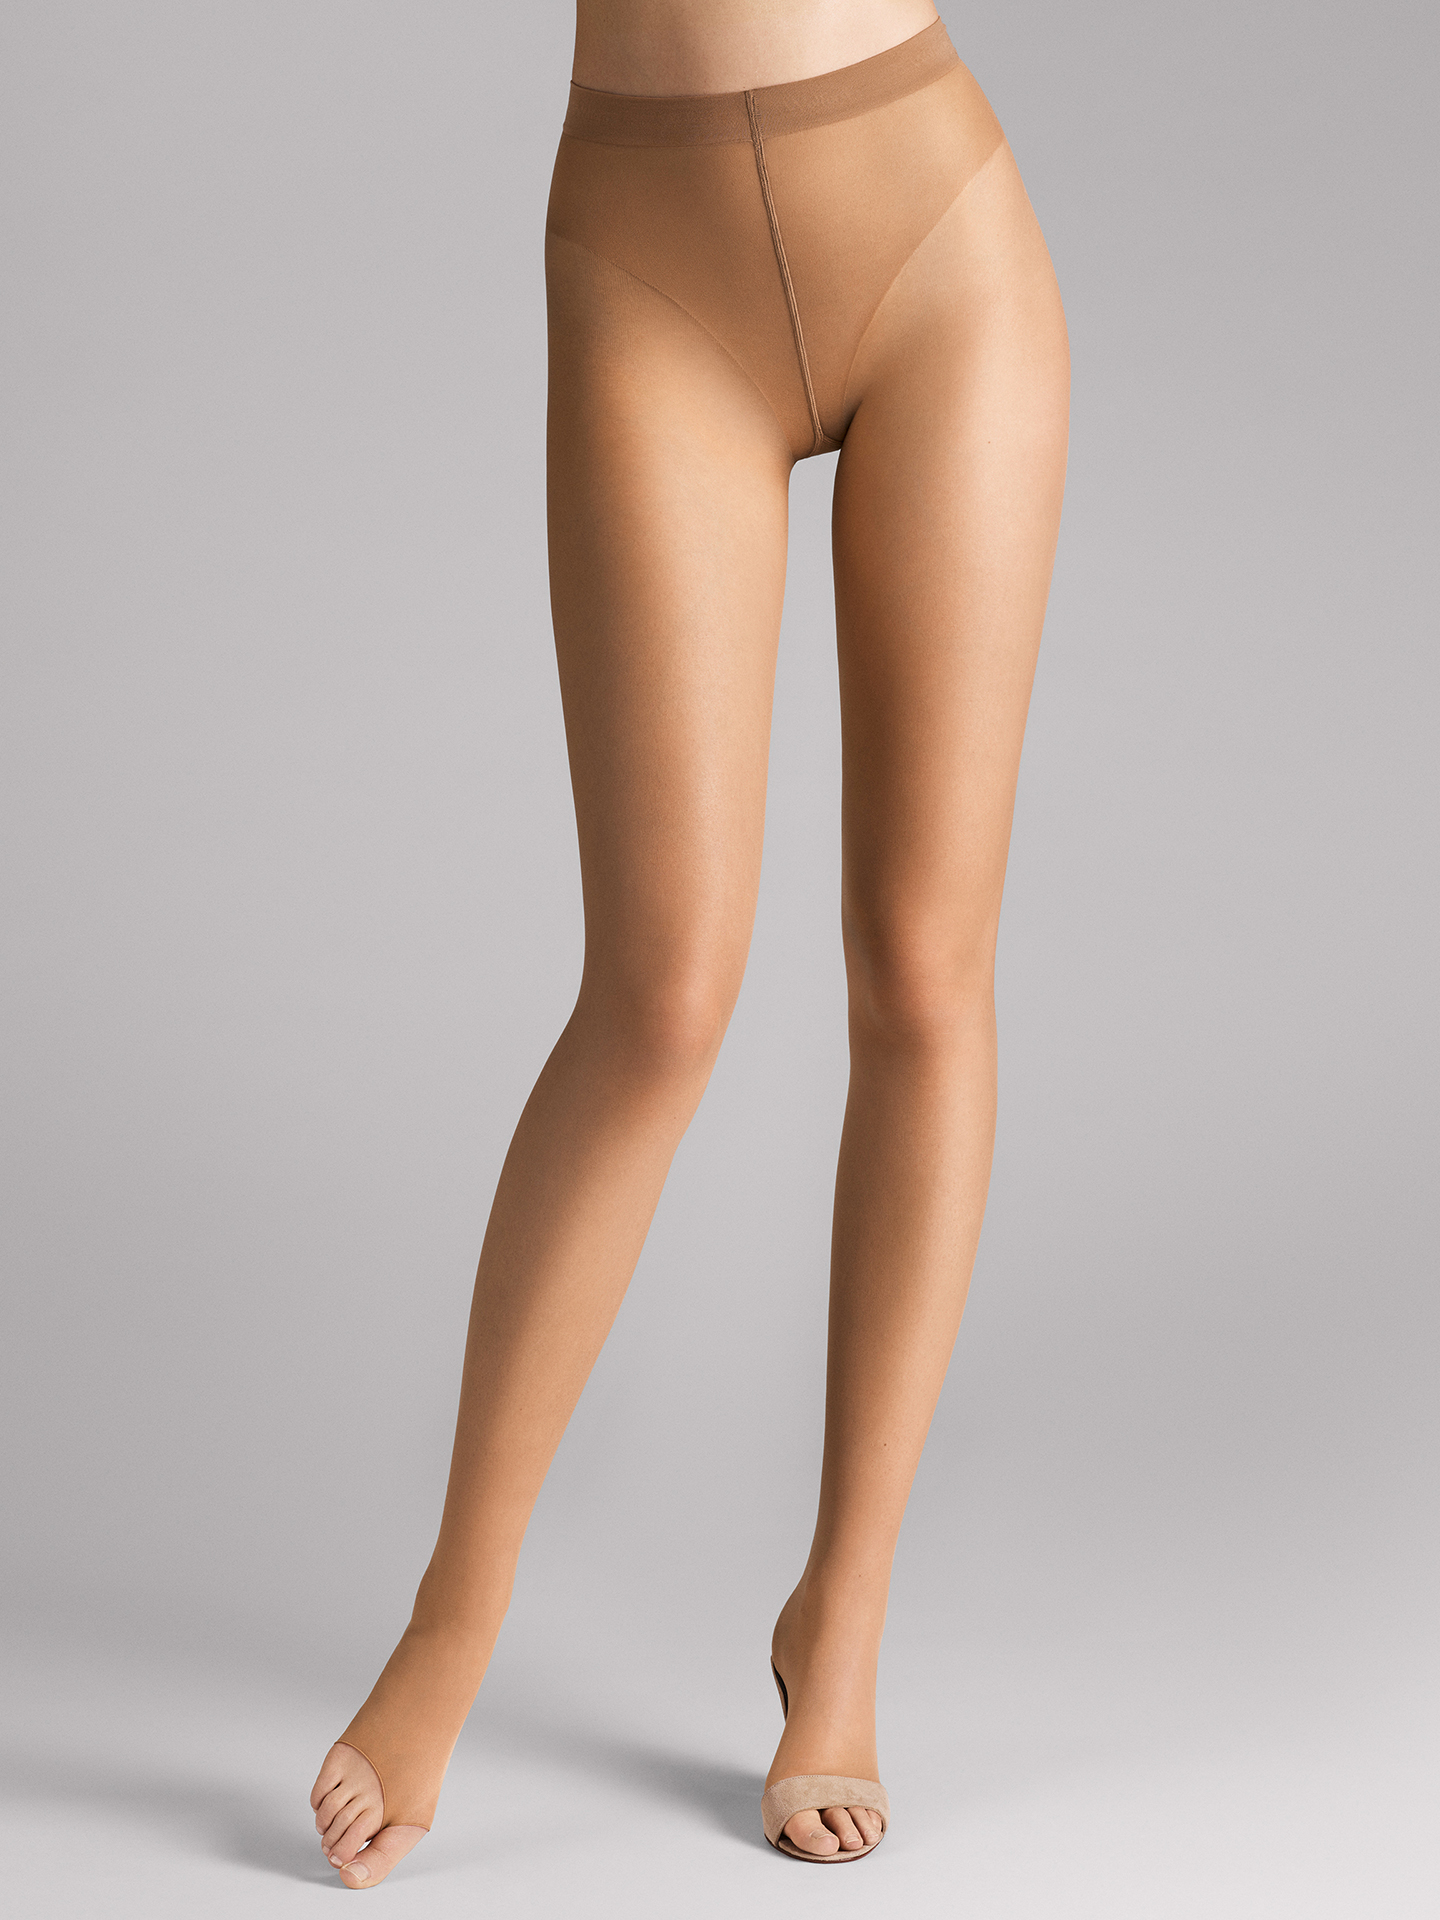 Luxe 9 Toeless Tights - 4060 - L | Sportbekleidung > Sporthosen > Tights | Wolford